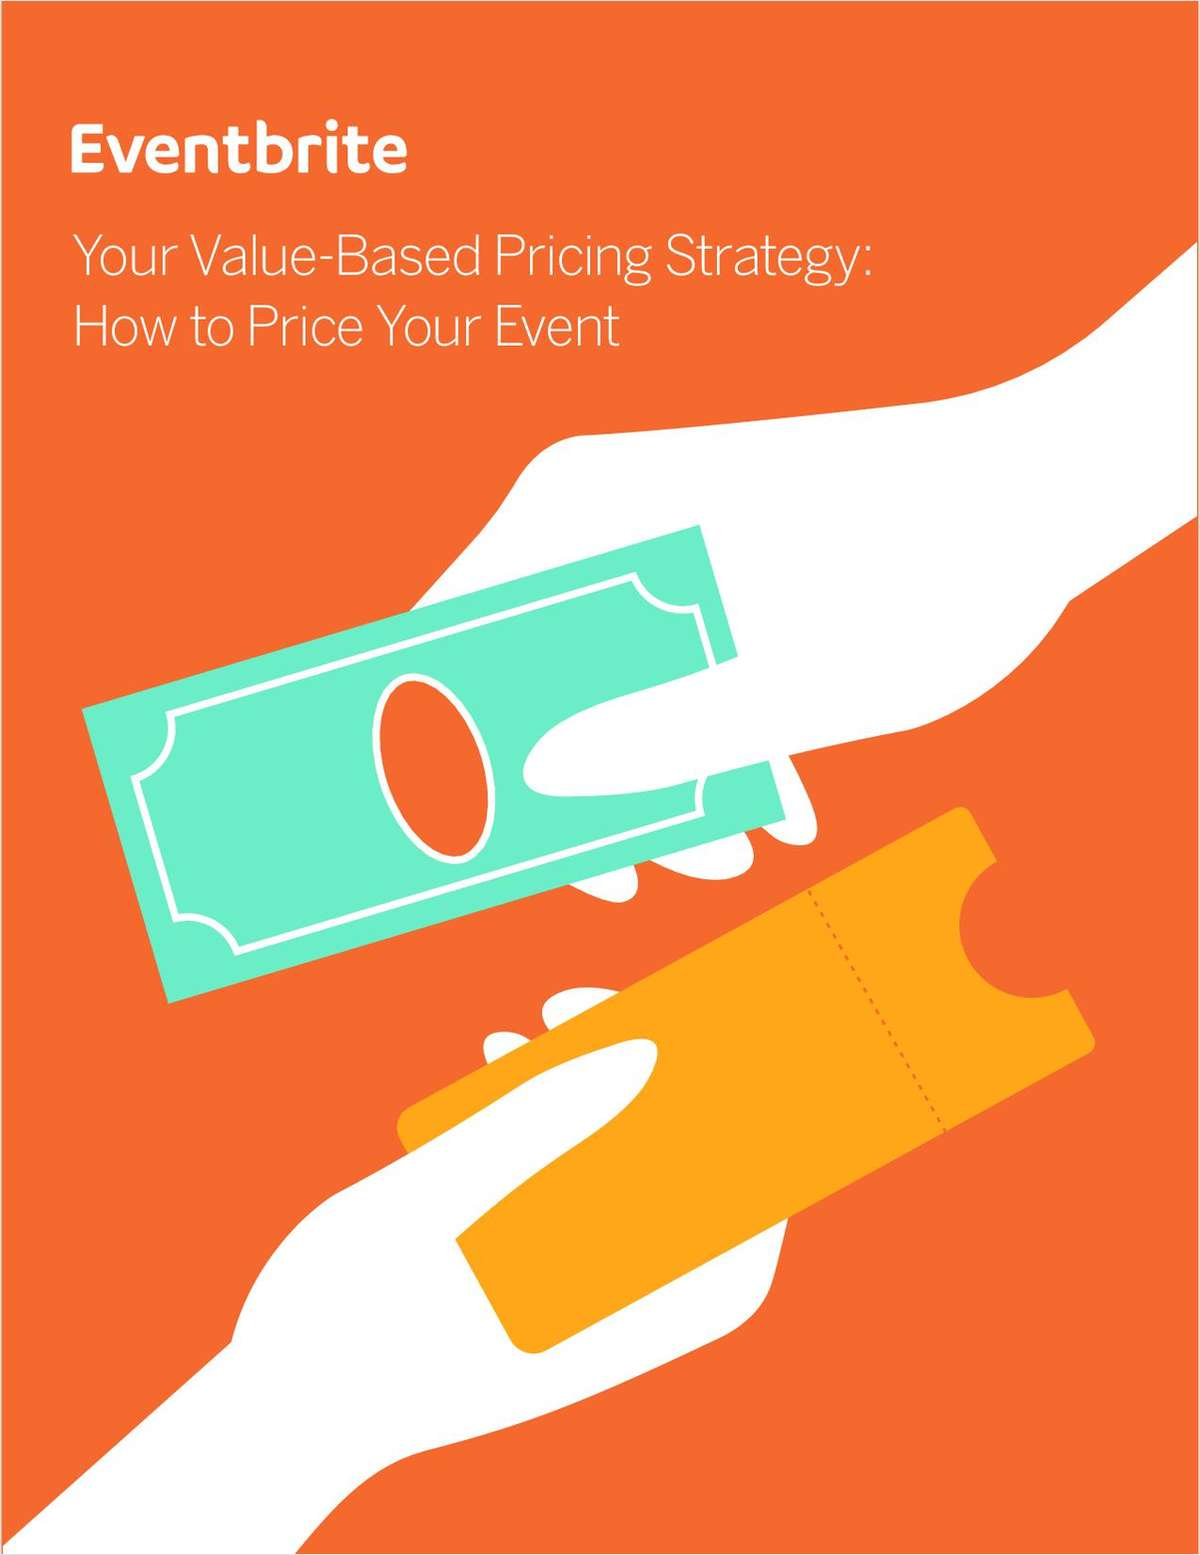 Your Value-Based Pricing Strategy: How to Price Your Event